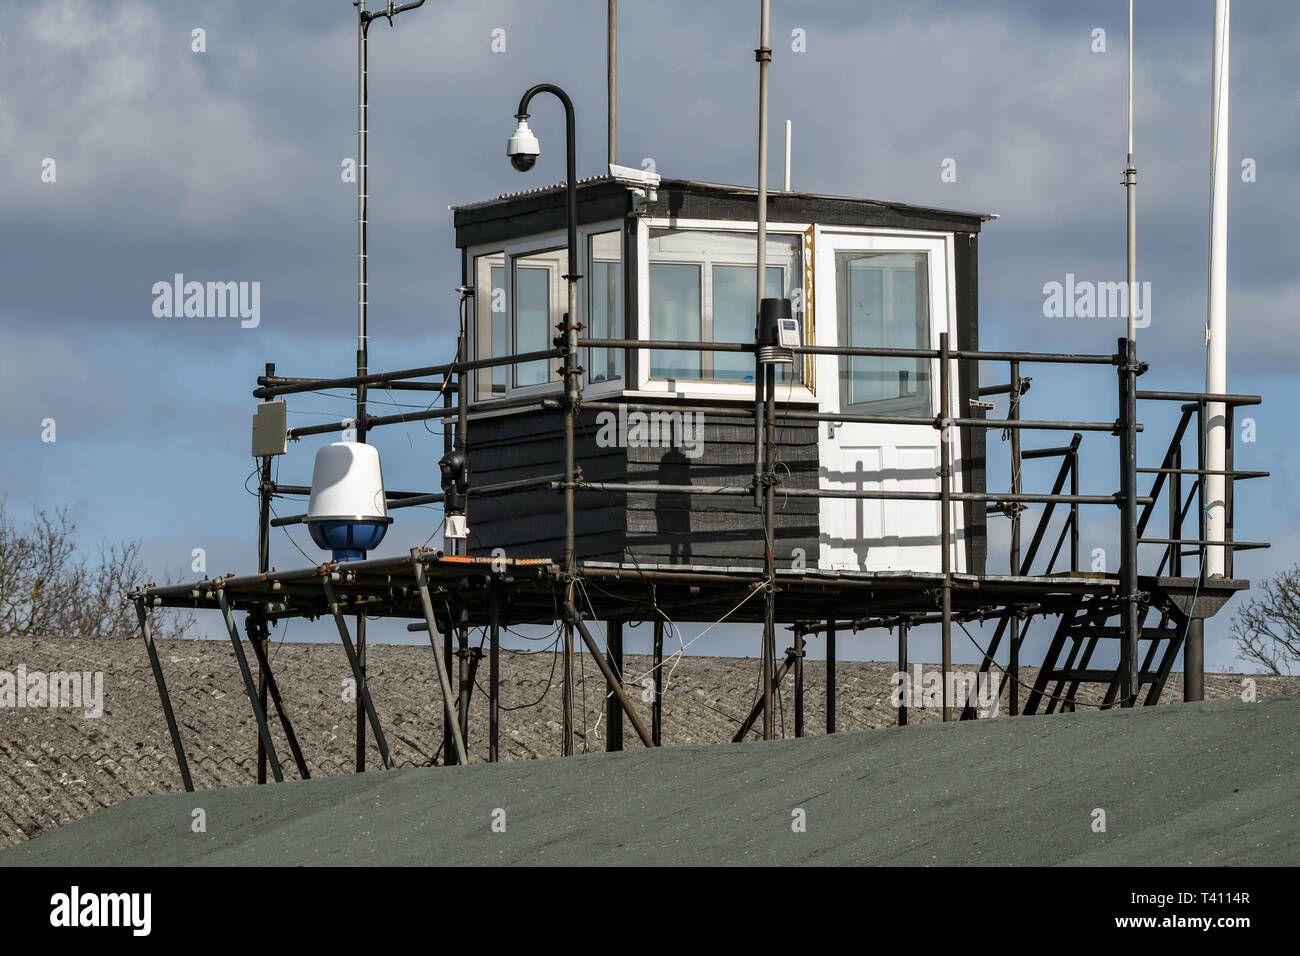 WHITE WALTHAM, ENGLAND - MARCH 2019: Control tower at White Waltham airfield. - Stock Image